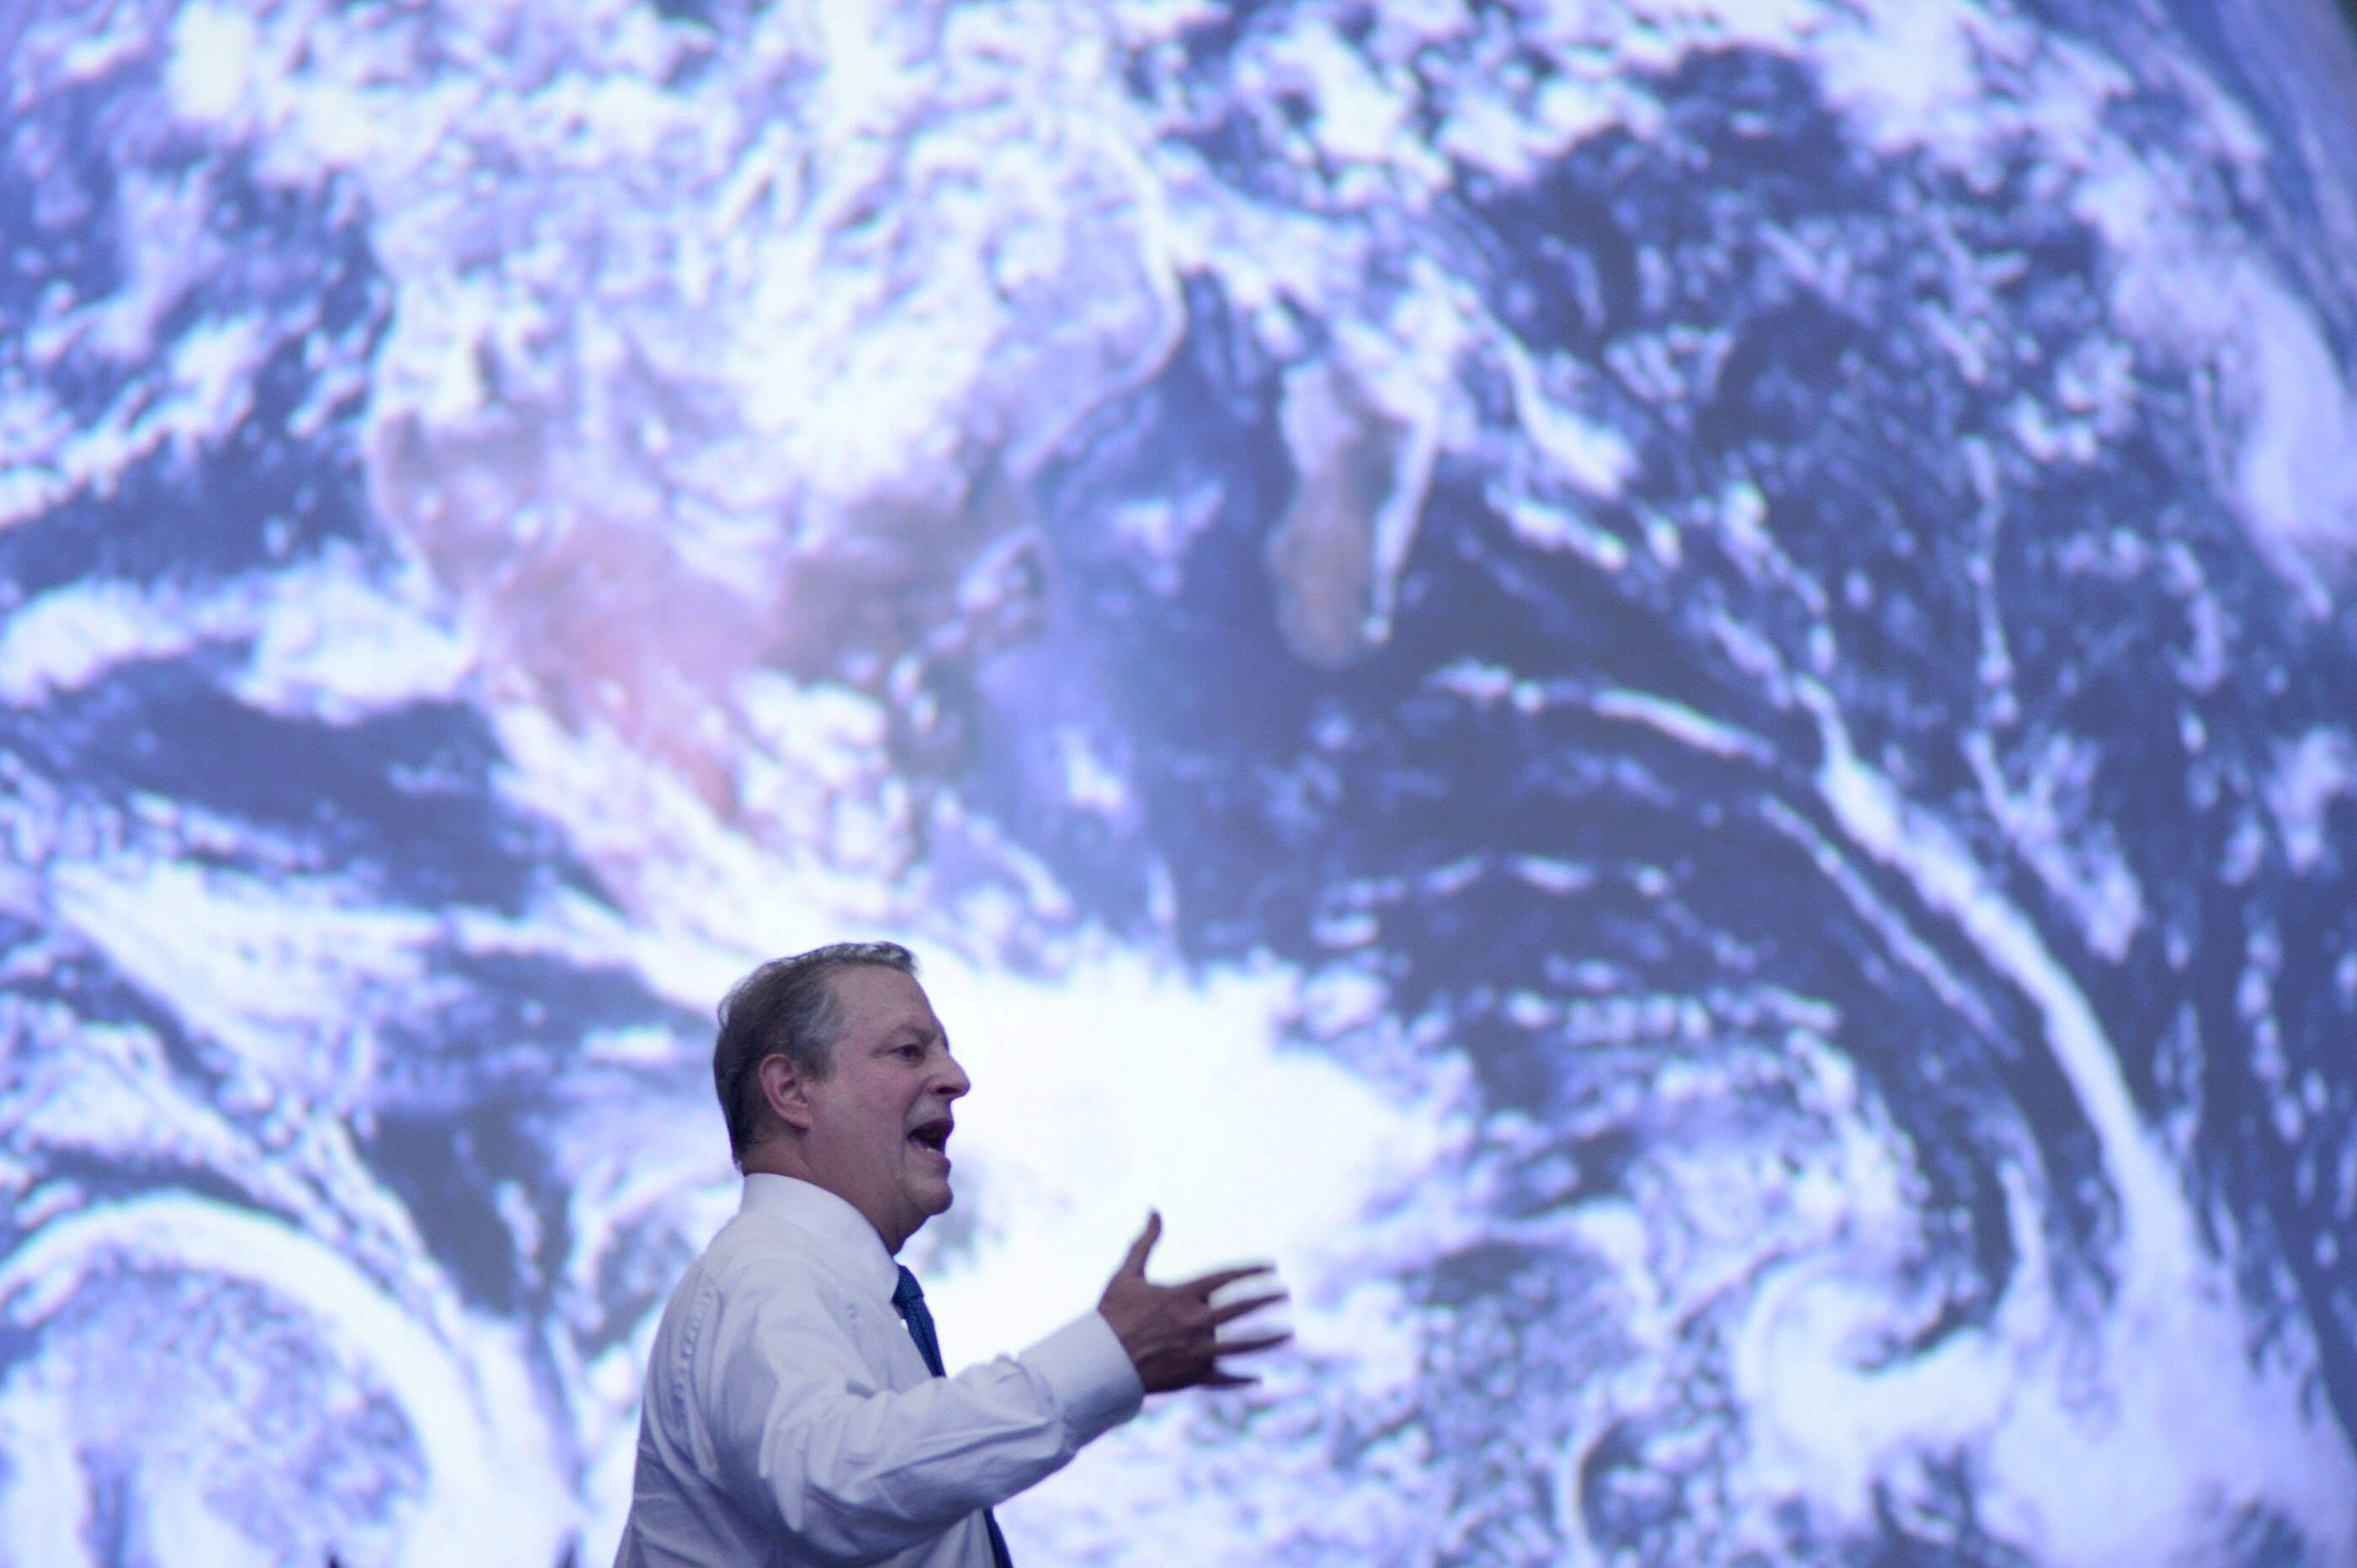 Ten years on: how Al Gore's An Inconvenient Truth made its mark